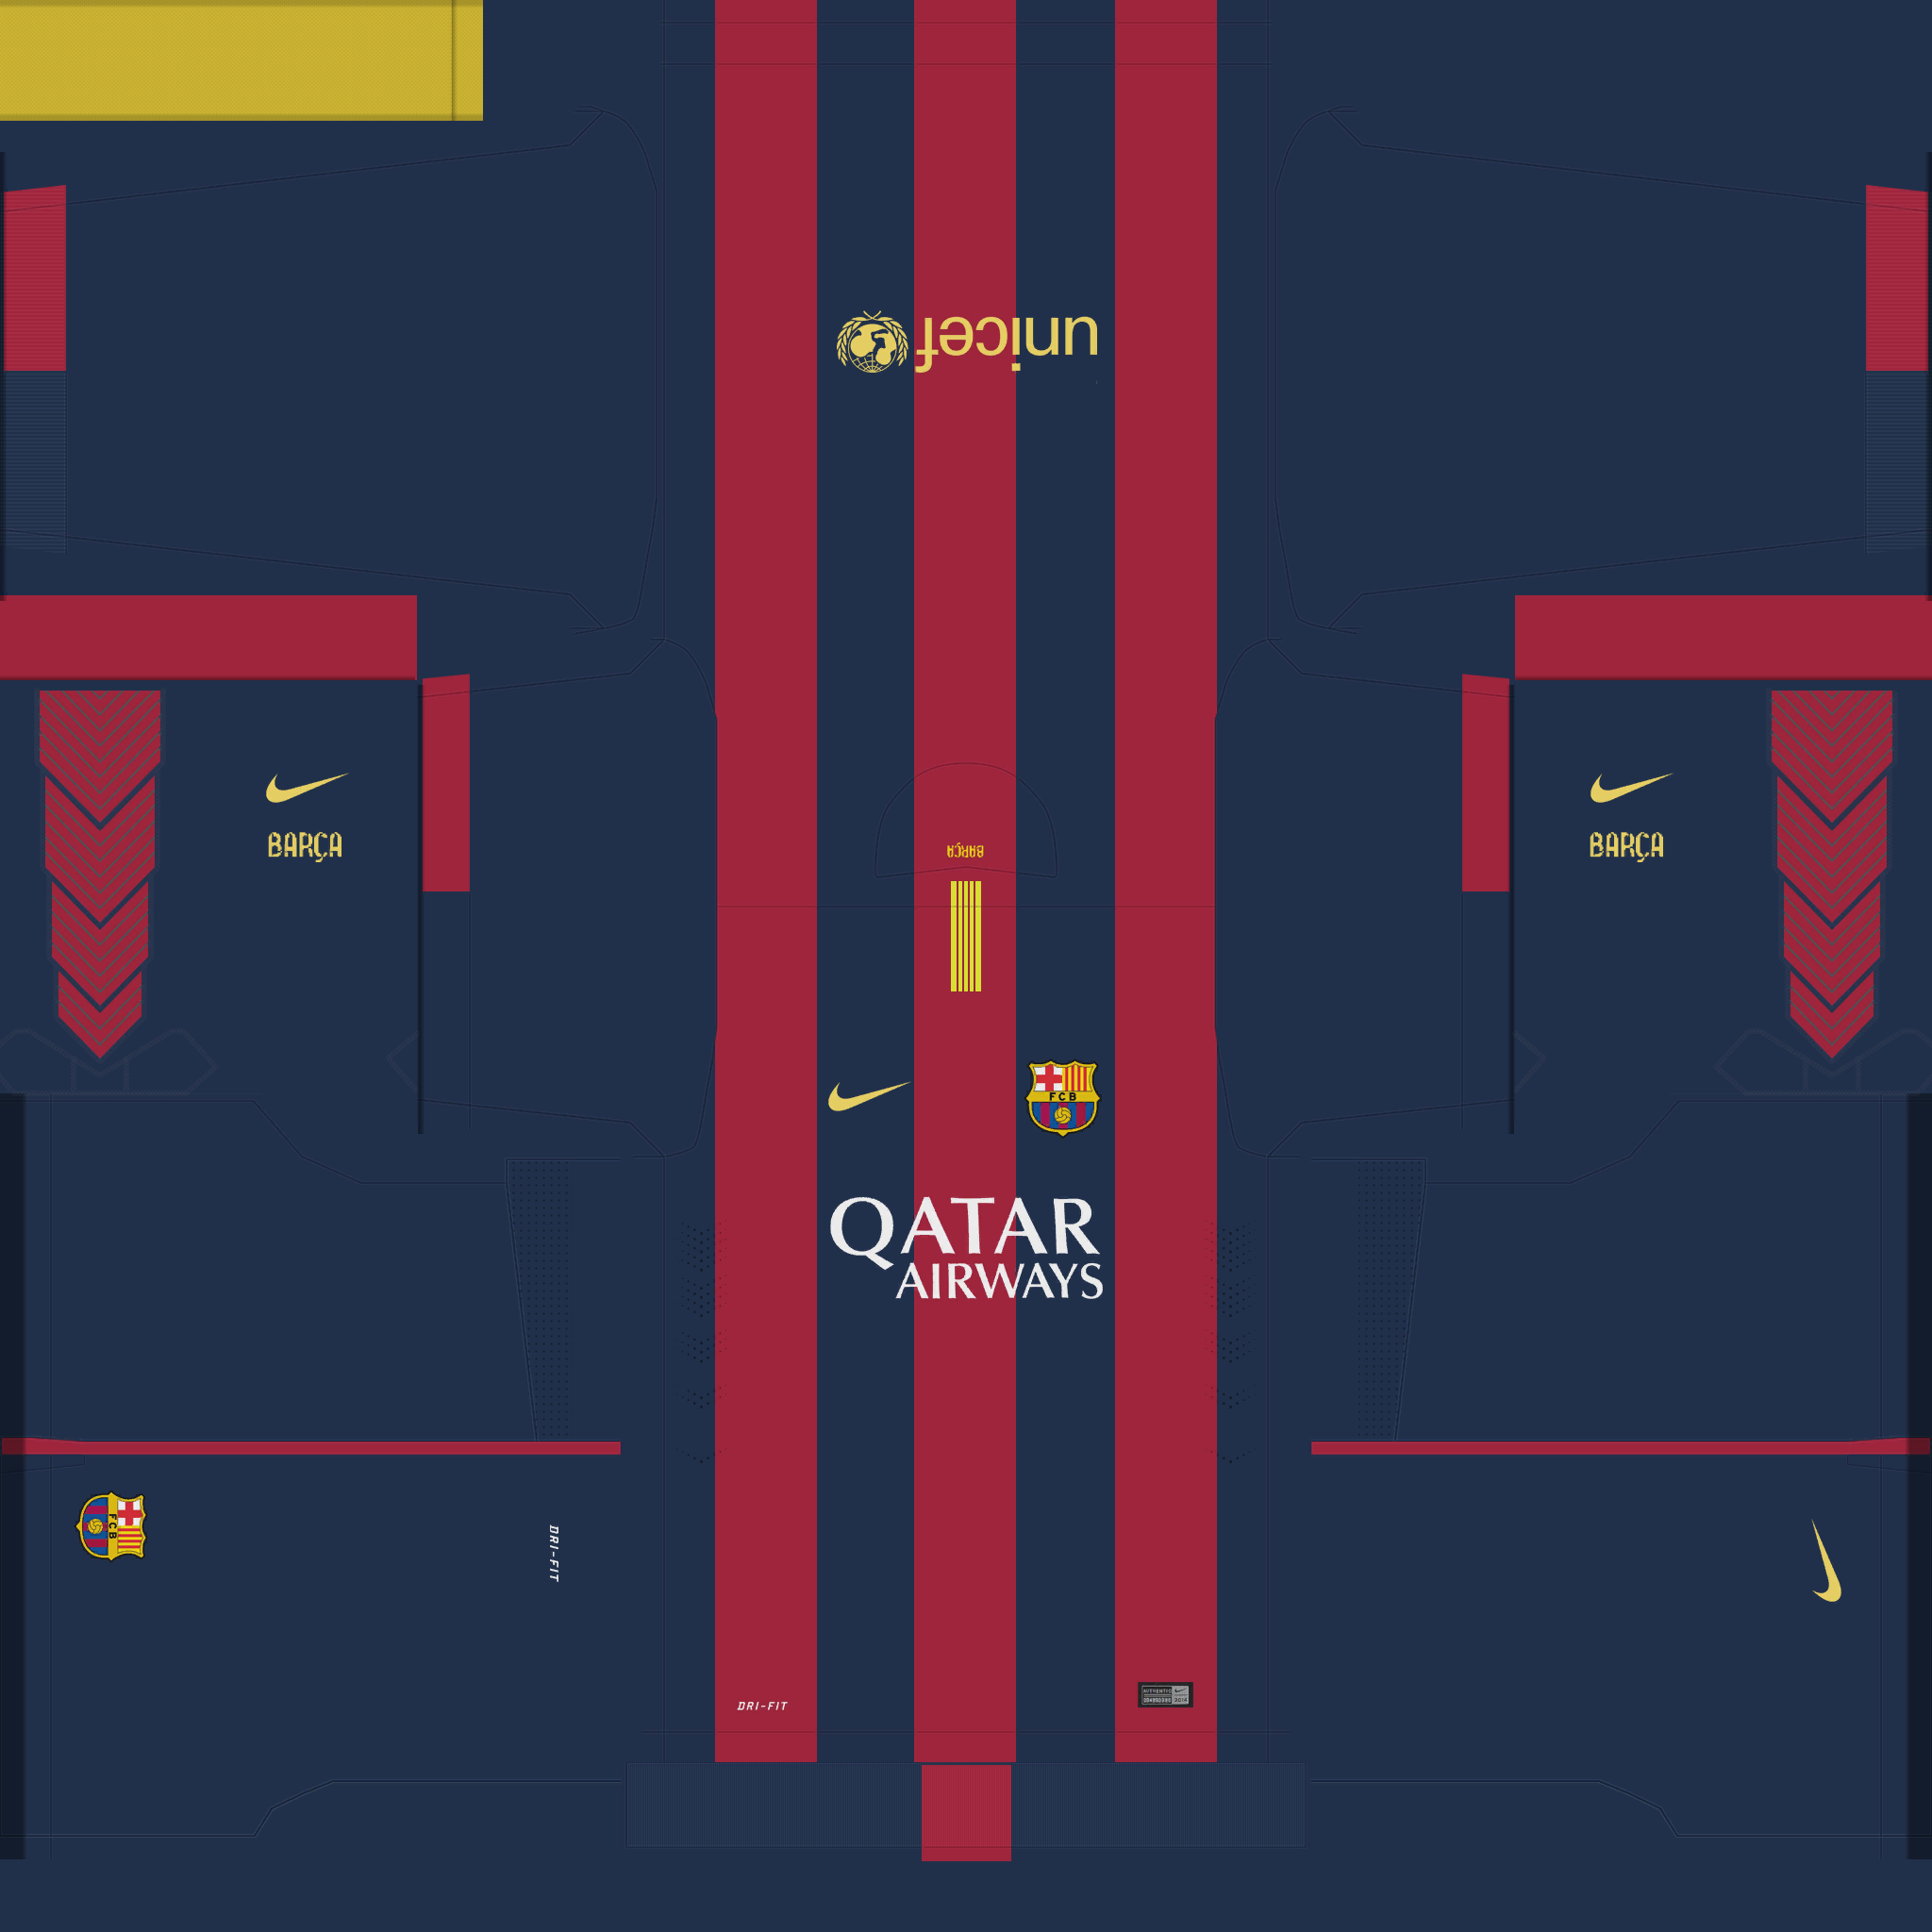 512x512 Soccer Kits Related Keywords & Suggestions - Barcelona 512x512 ...